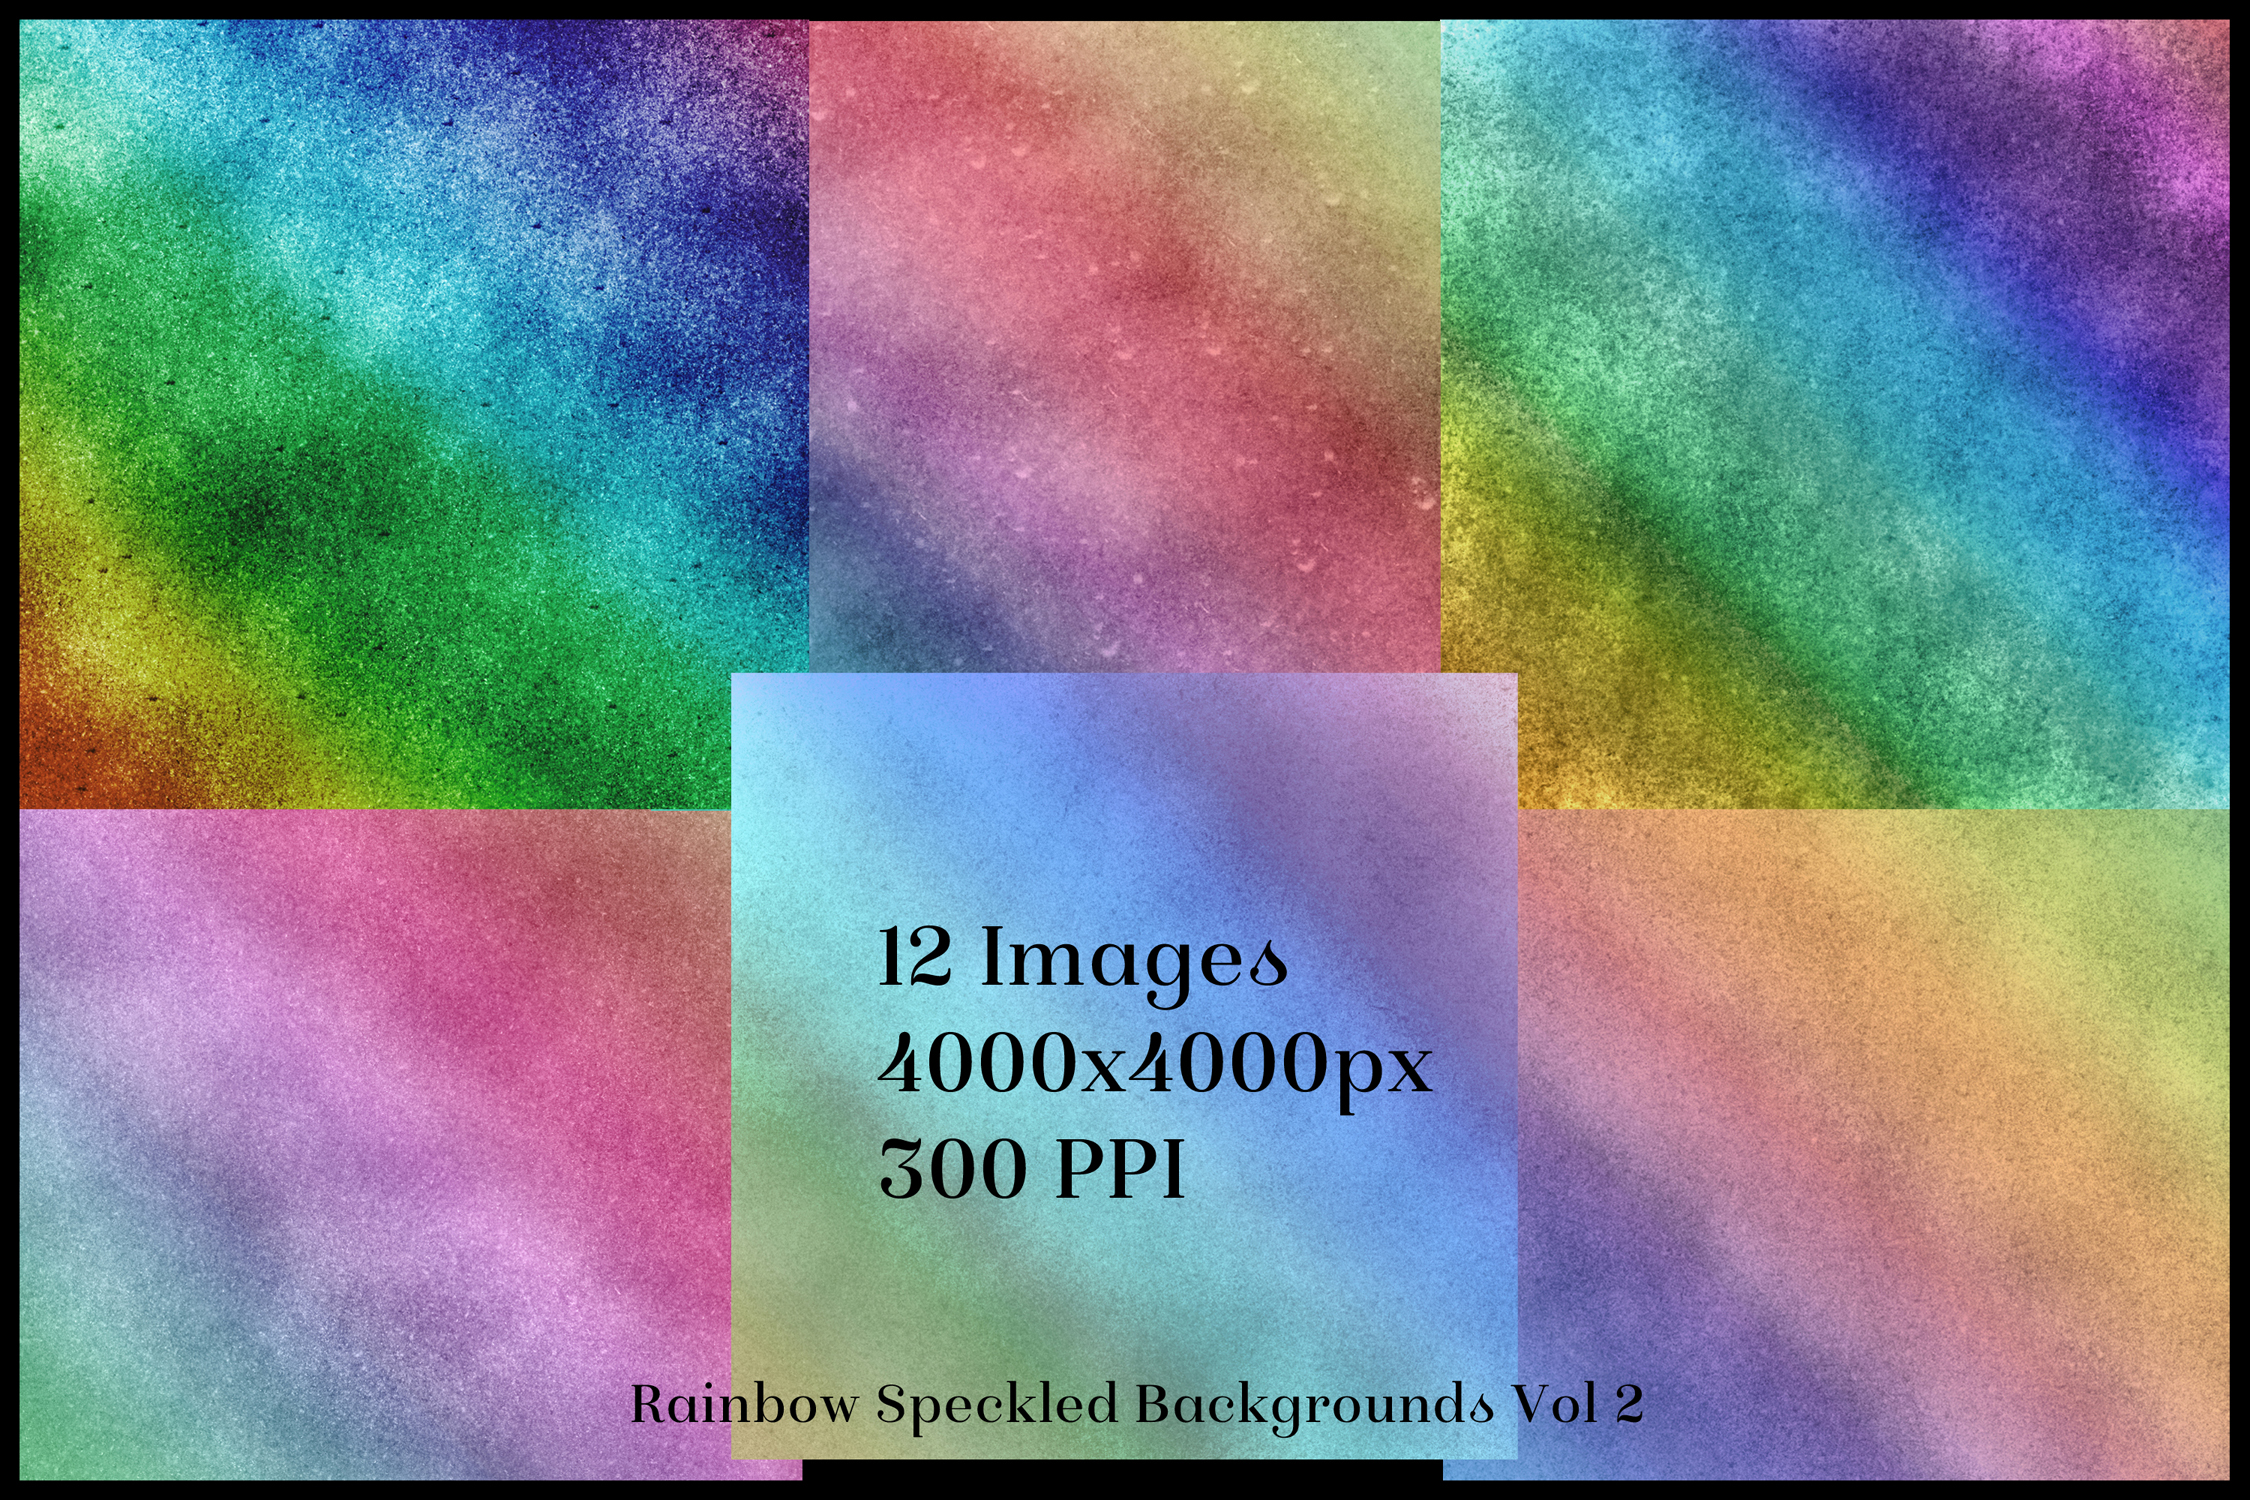 Rainbow Speckled Backgrounds Vol 2 - 12 Image Textures Set example image 2